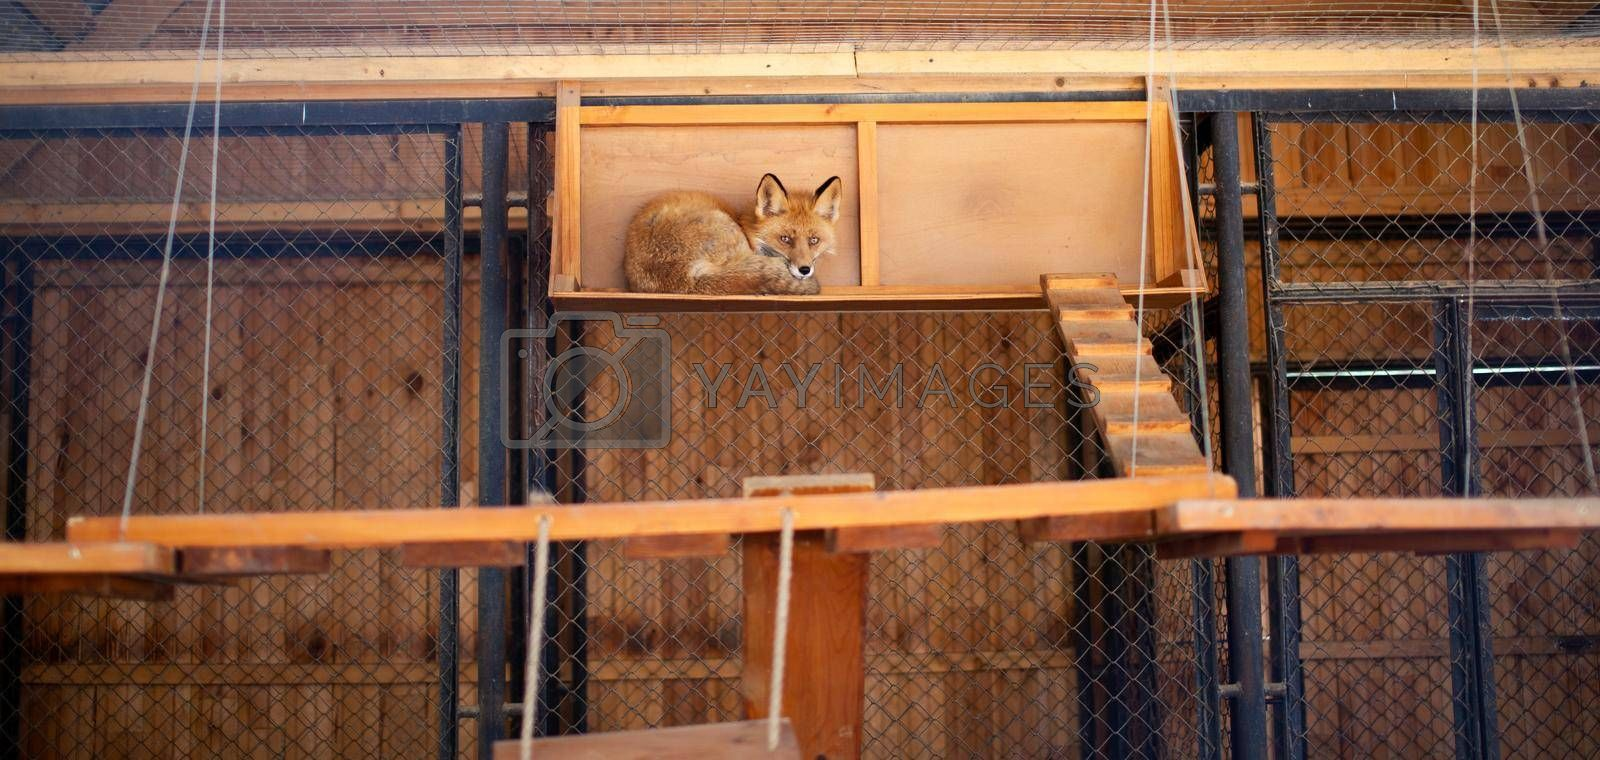 A wild red fox lies in a cage in the zoo. Lesa has a beautiful, warm and red fur. High quality photos